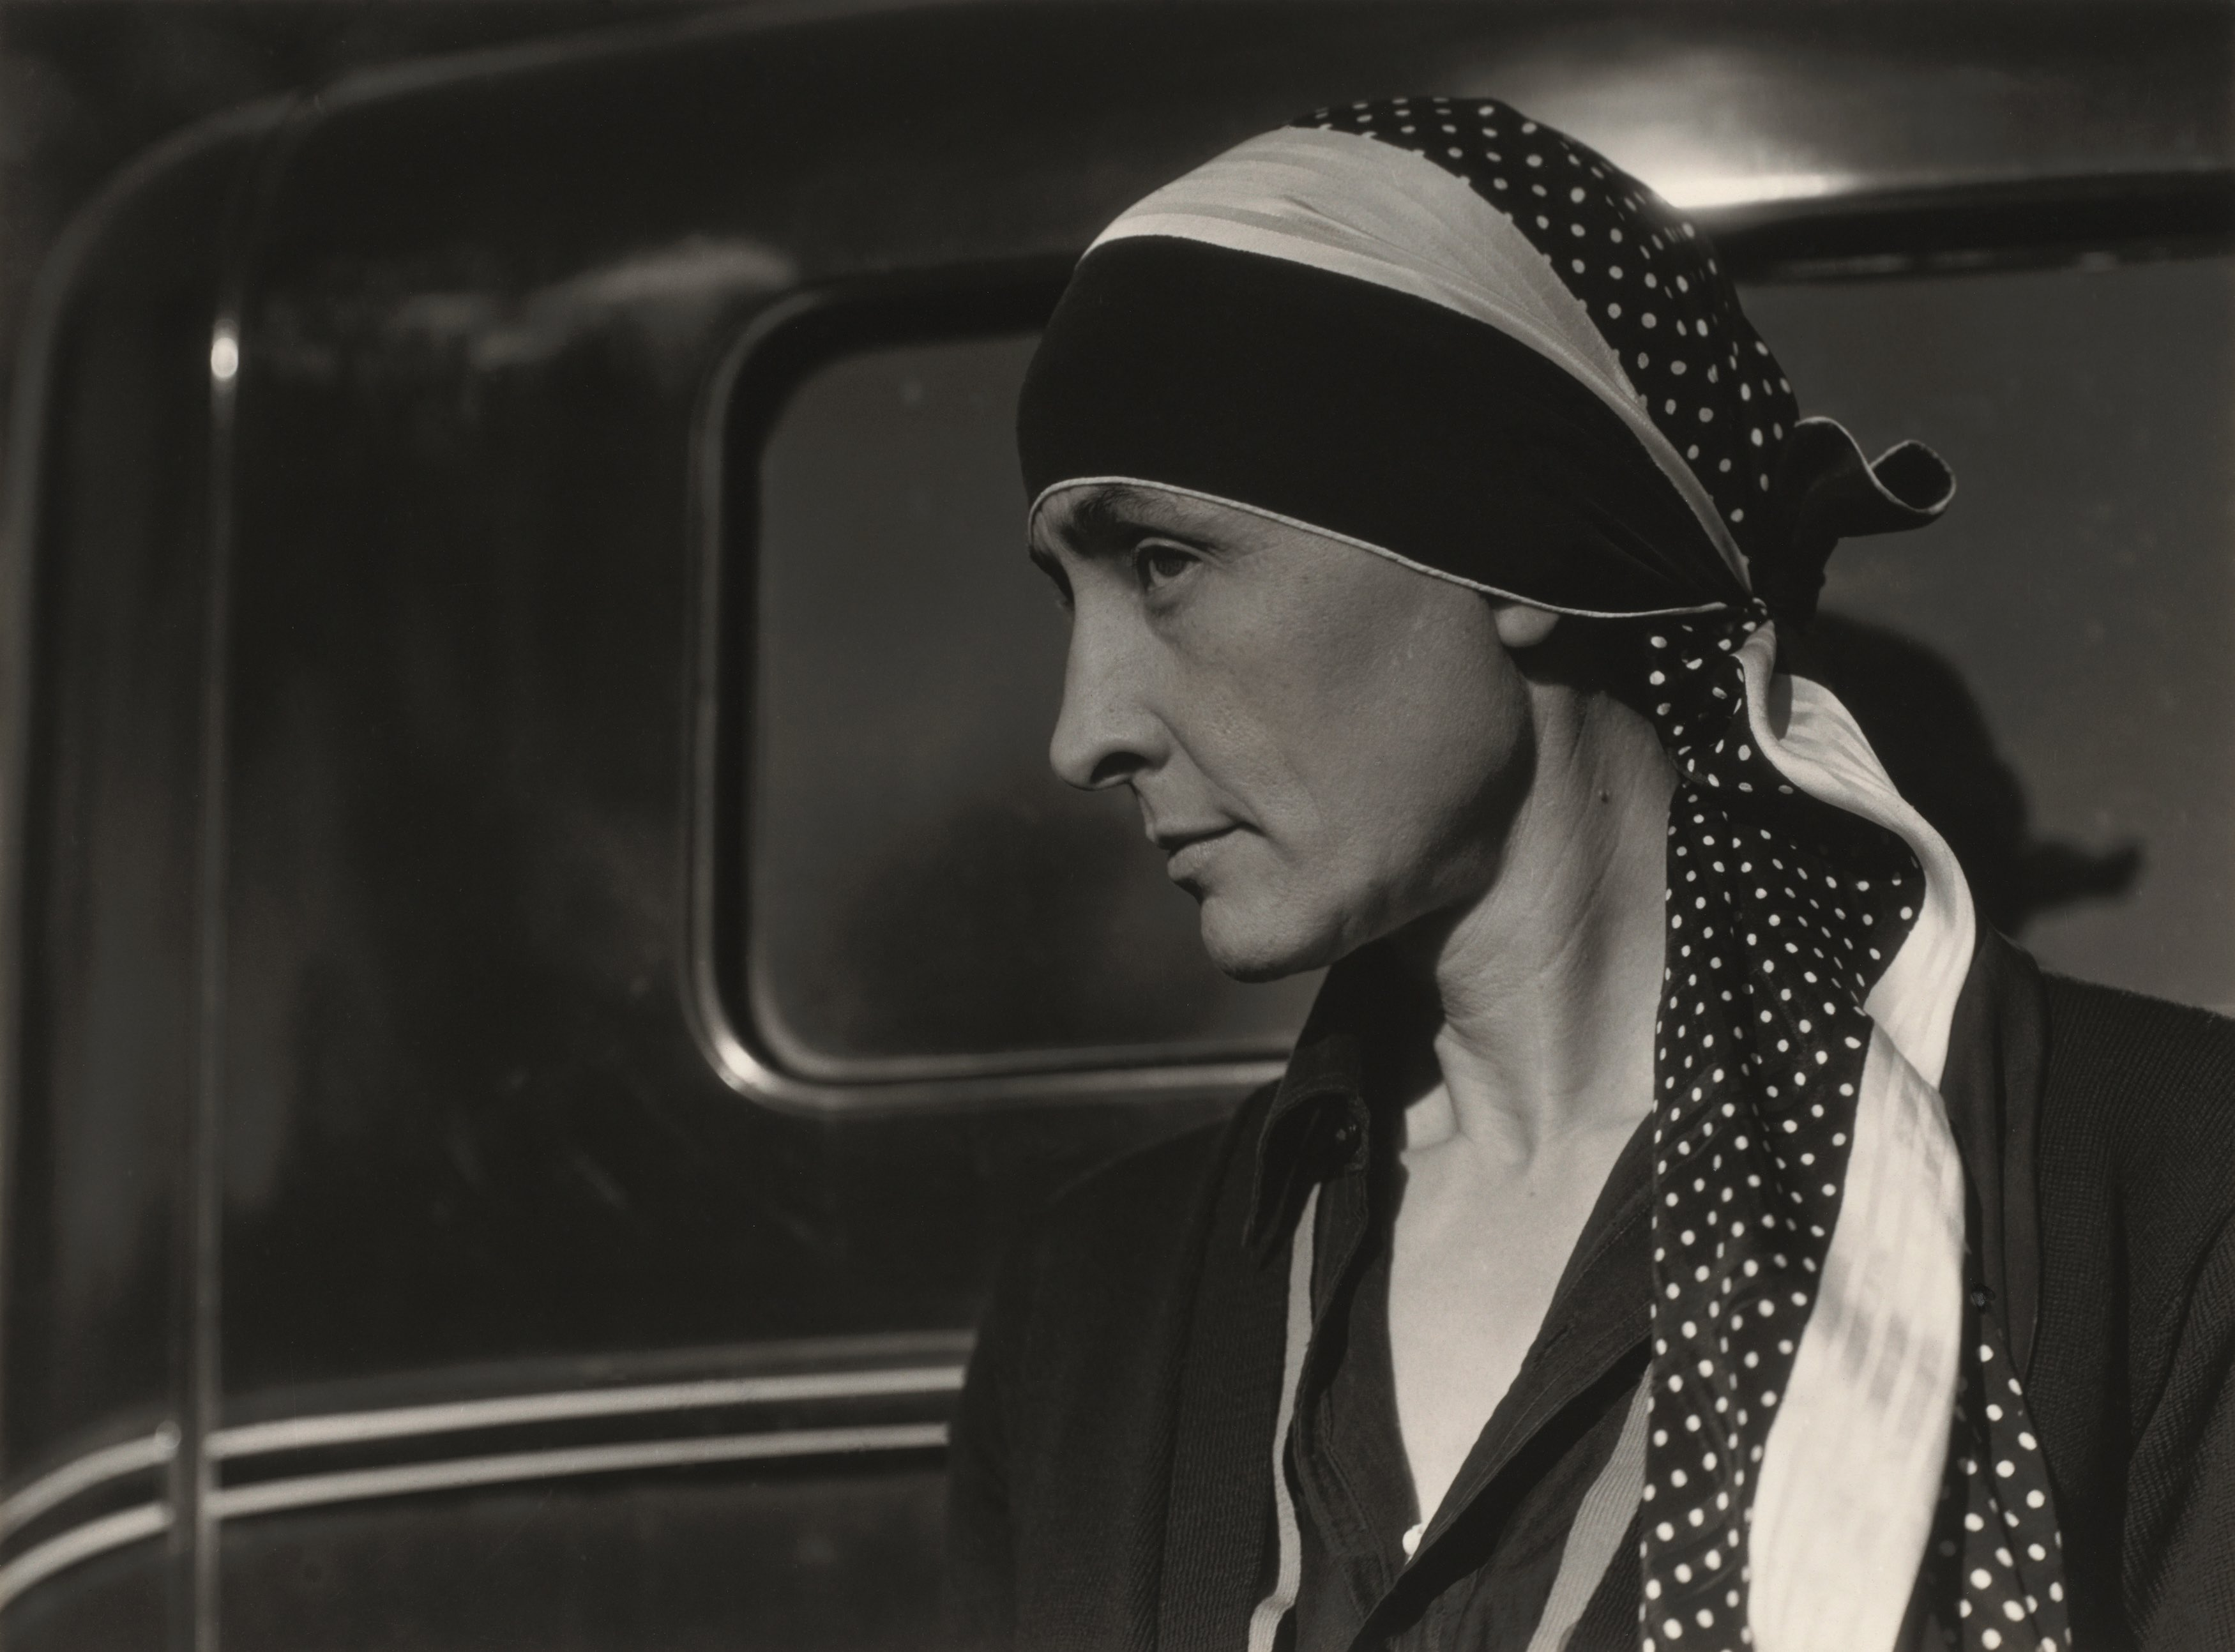 Alfred Stieglitz (American, 1864–1946). Georgia O'Keeffe, 1929. National Gallery of Art, Washington, D.C.; Alfred Stieglitz Collection, 1980.70.247. © Board of Trustees, National Gallery of Art, Washington